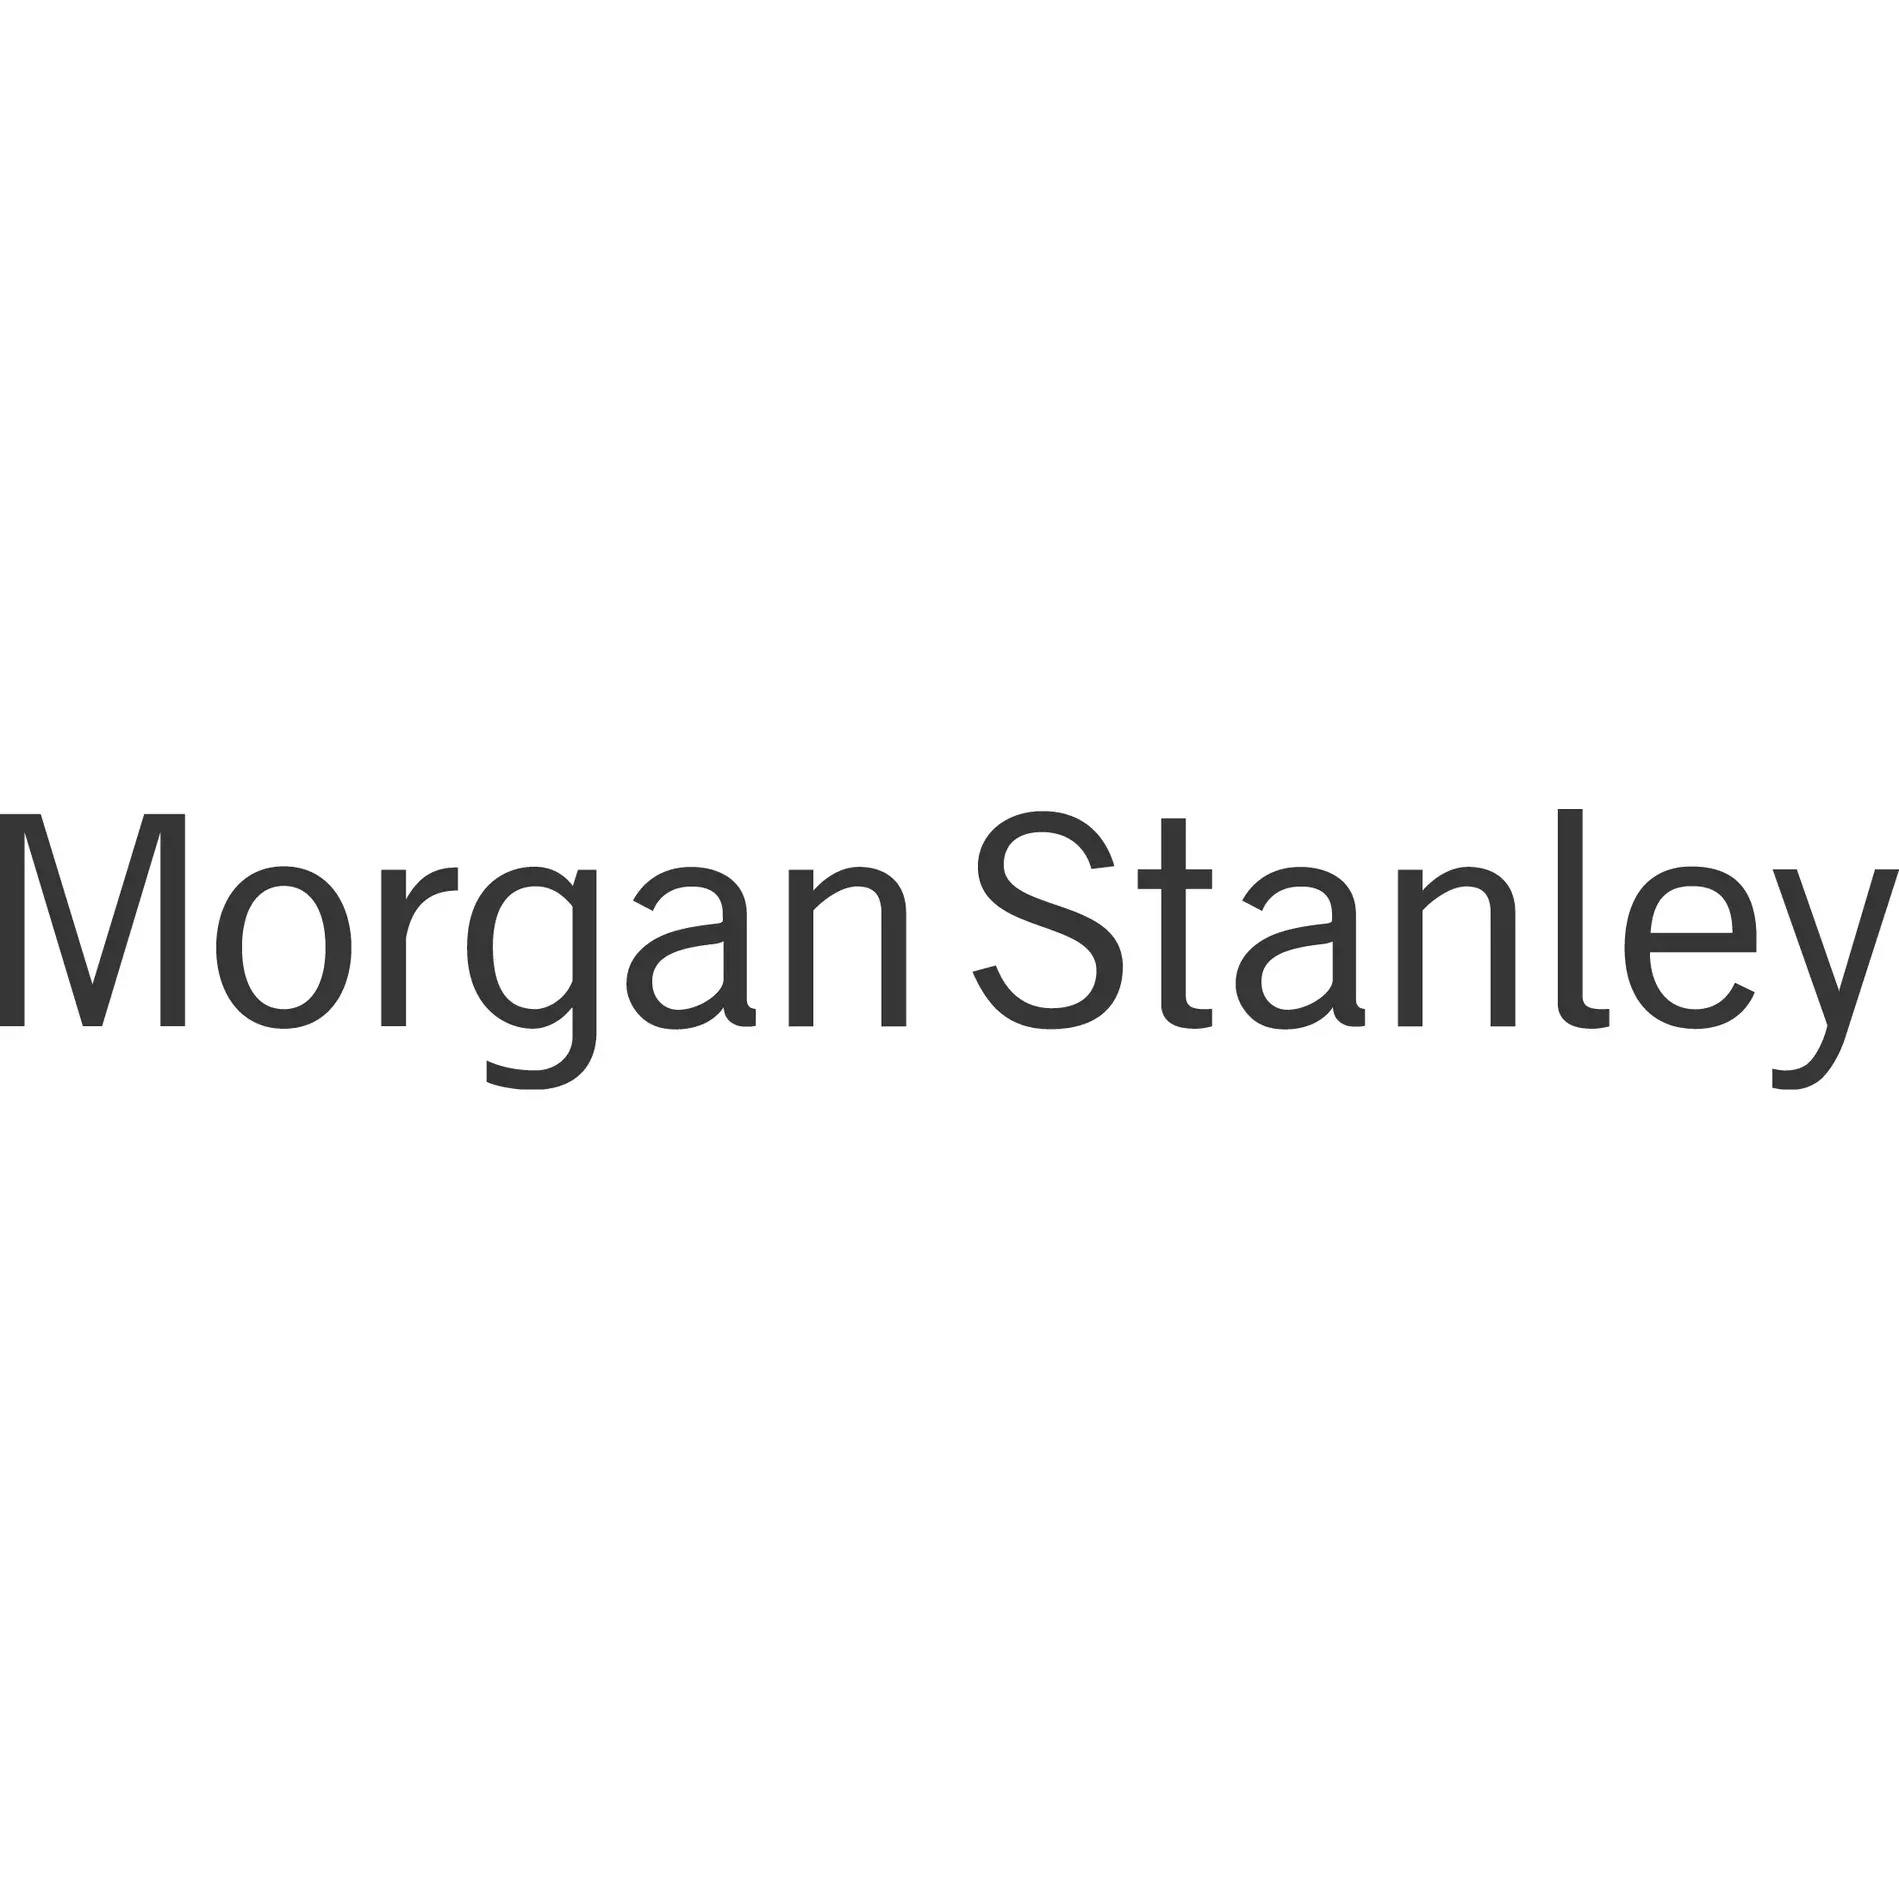 Goya Group - Morgan Stanley